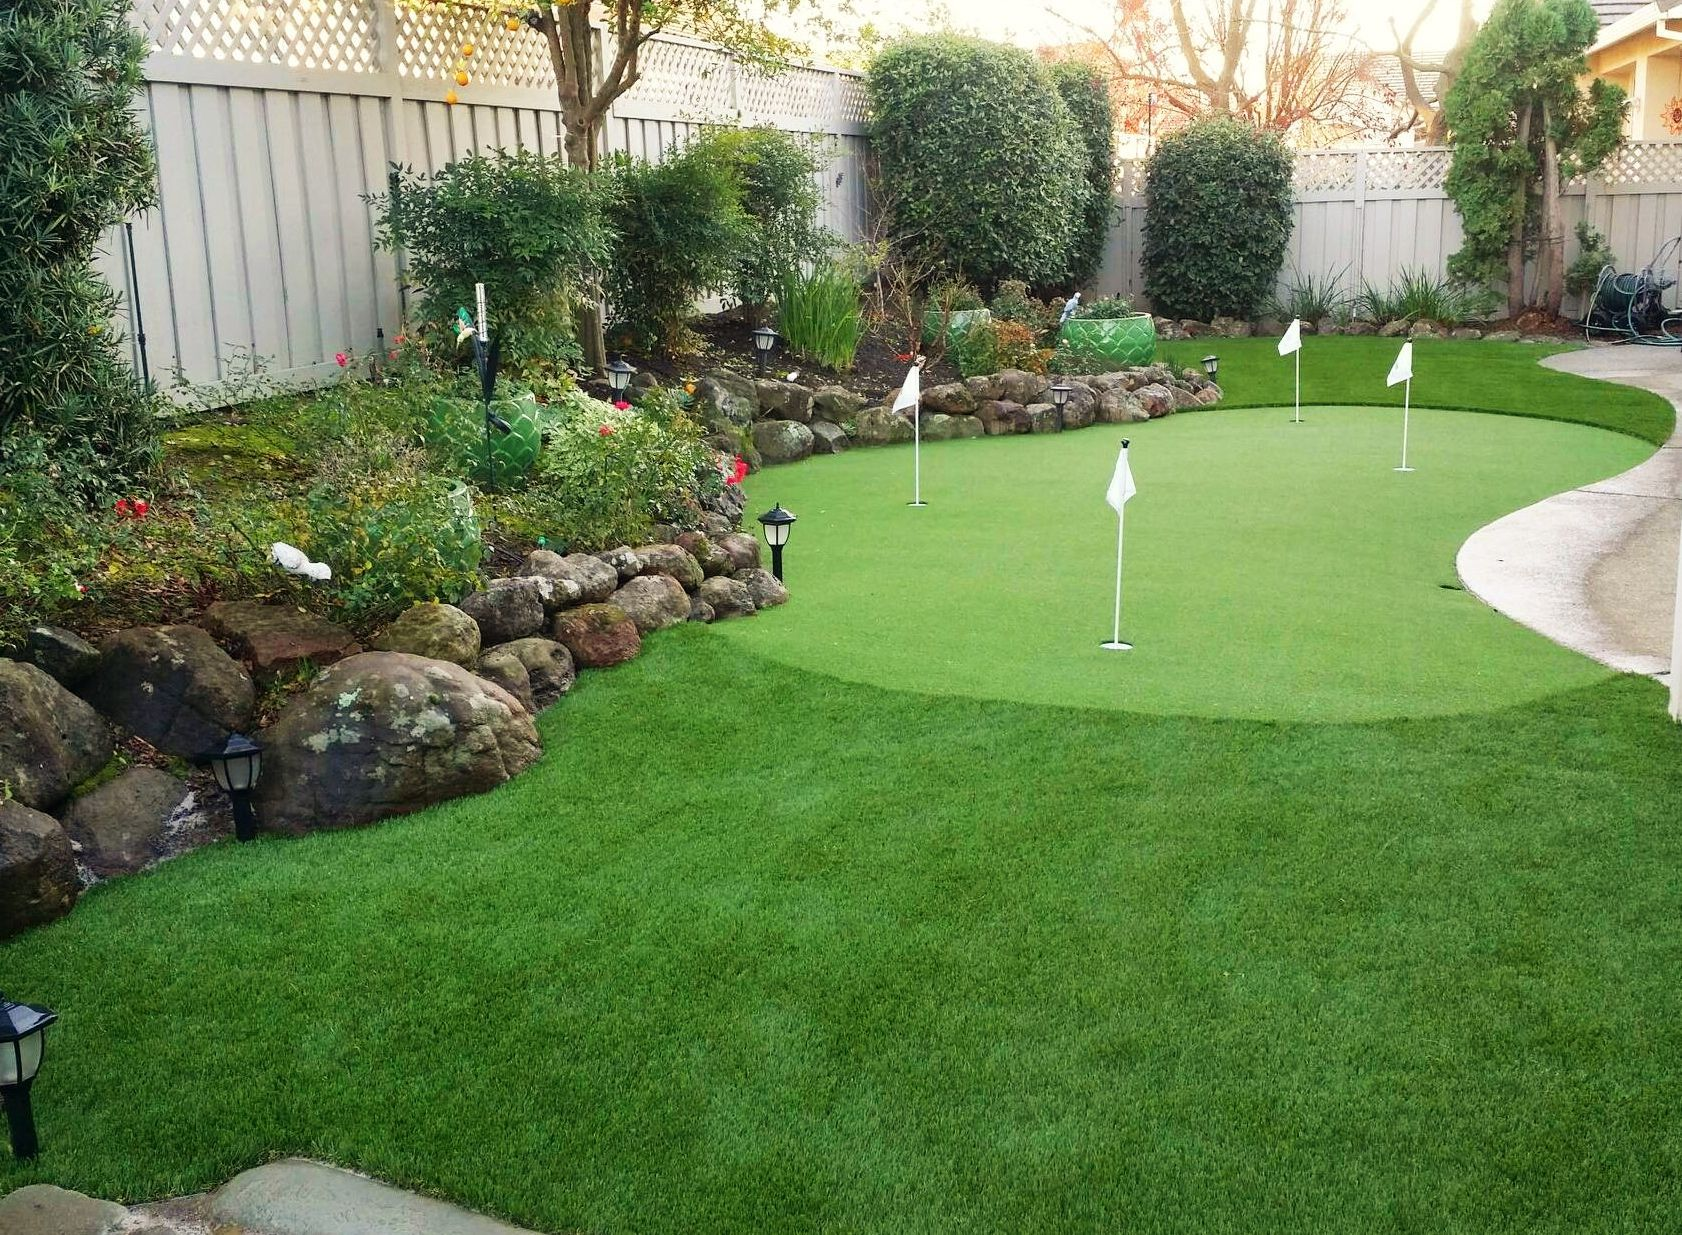 How To Build A Putting Green In My Backyard imagine your very own backyard golf greens. we make it possible